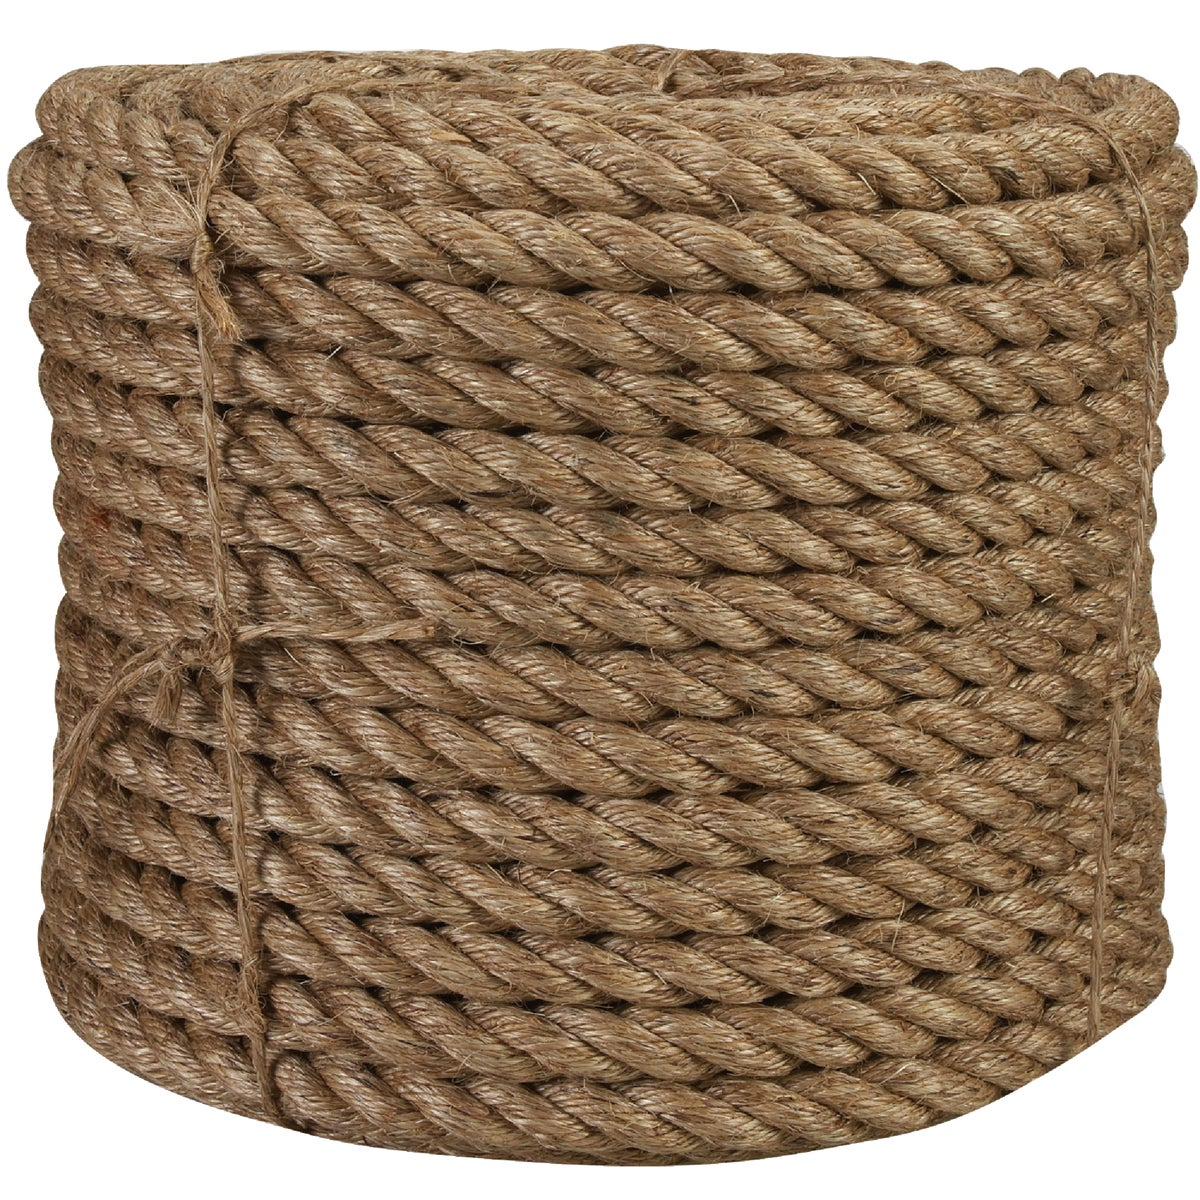 "1""X300' MANILA ROPE - 739213 by Do it Best"